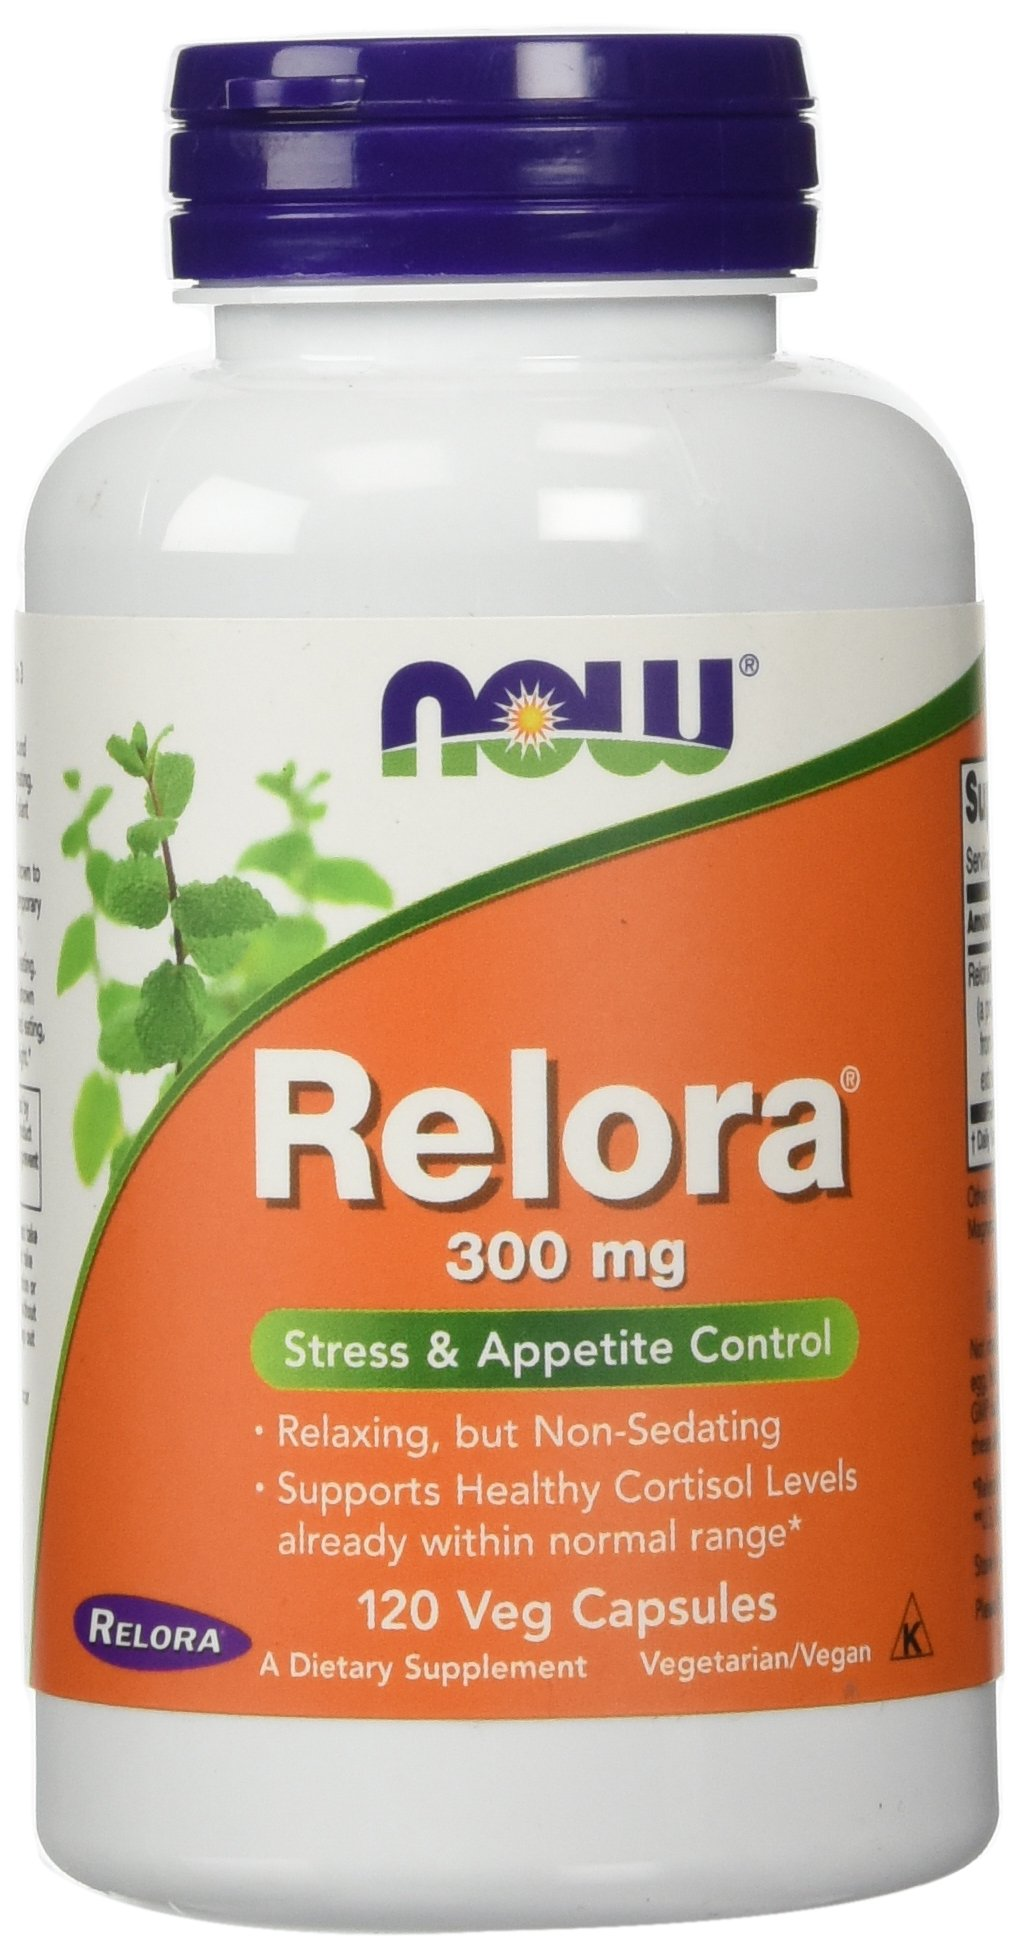 NOW Relora 300 mg,120 Veg Capsules by NOW Foods